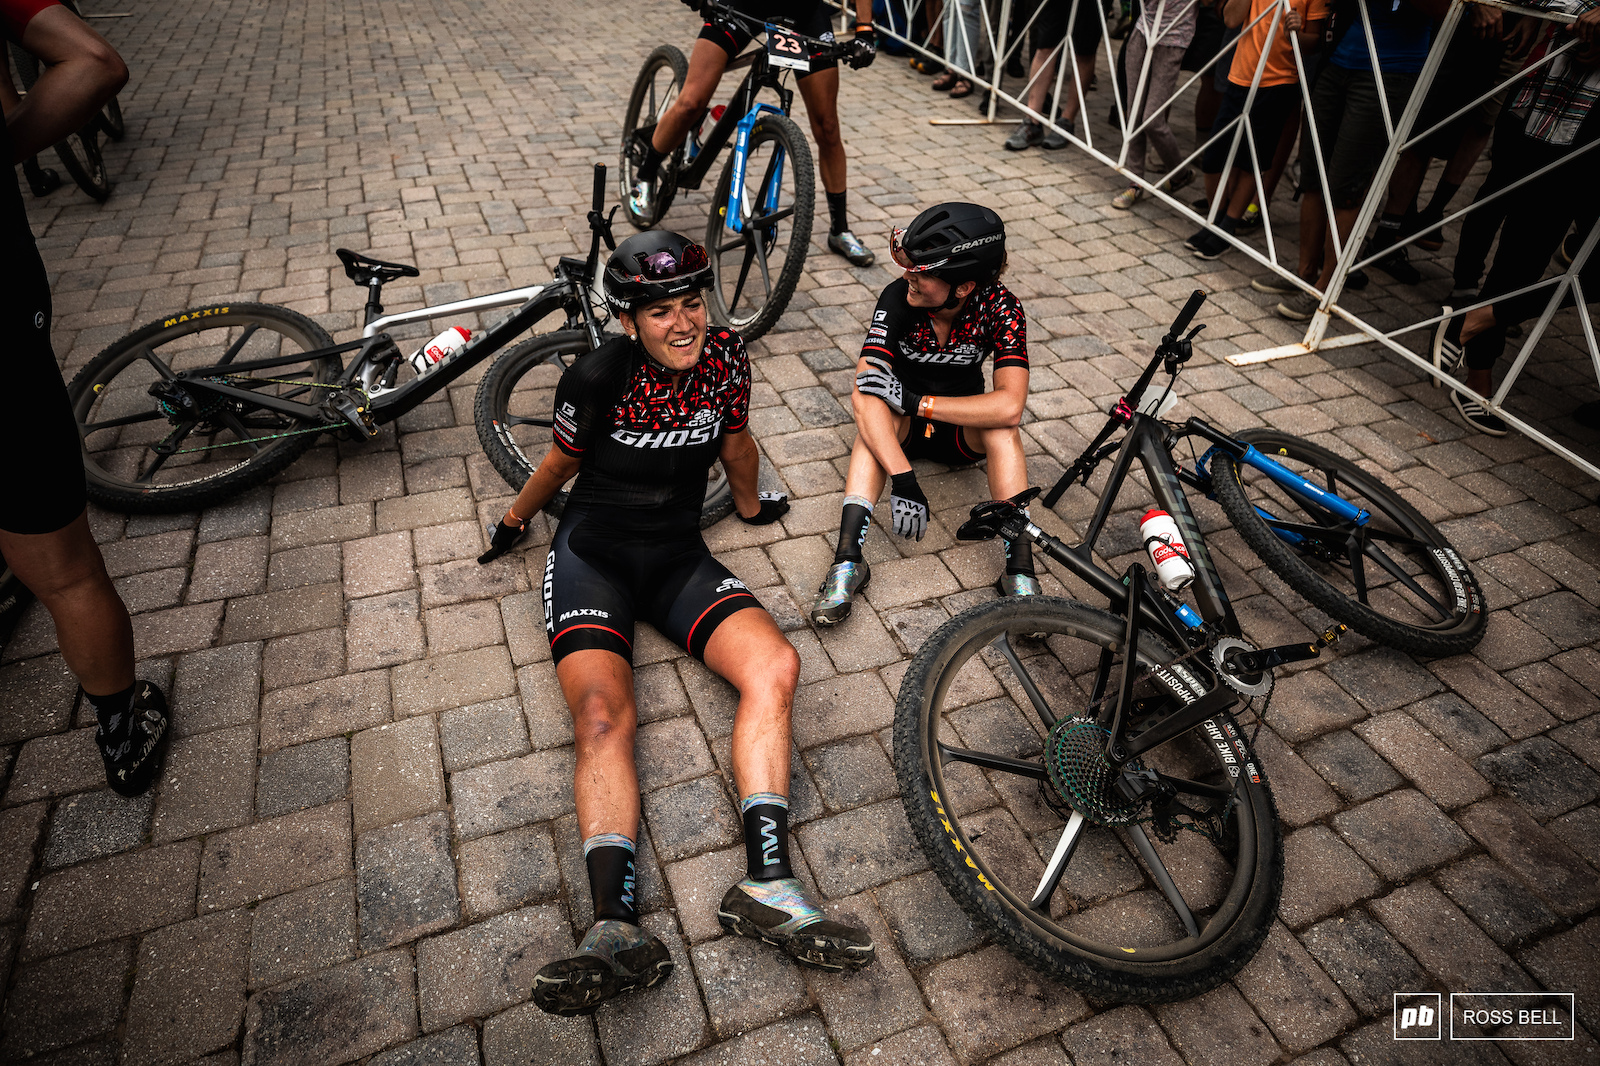 Nicole Koller catches up with her team mate Anne Terpstra after a strong ride into 6th.